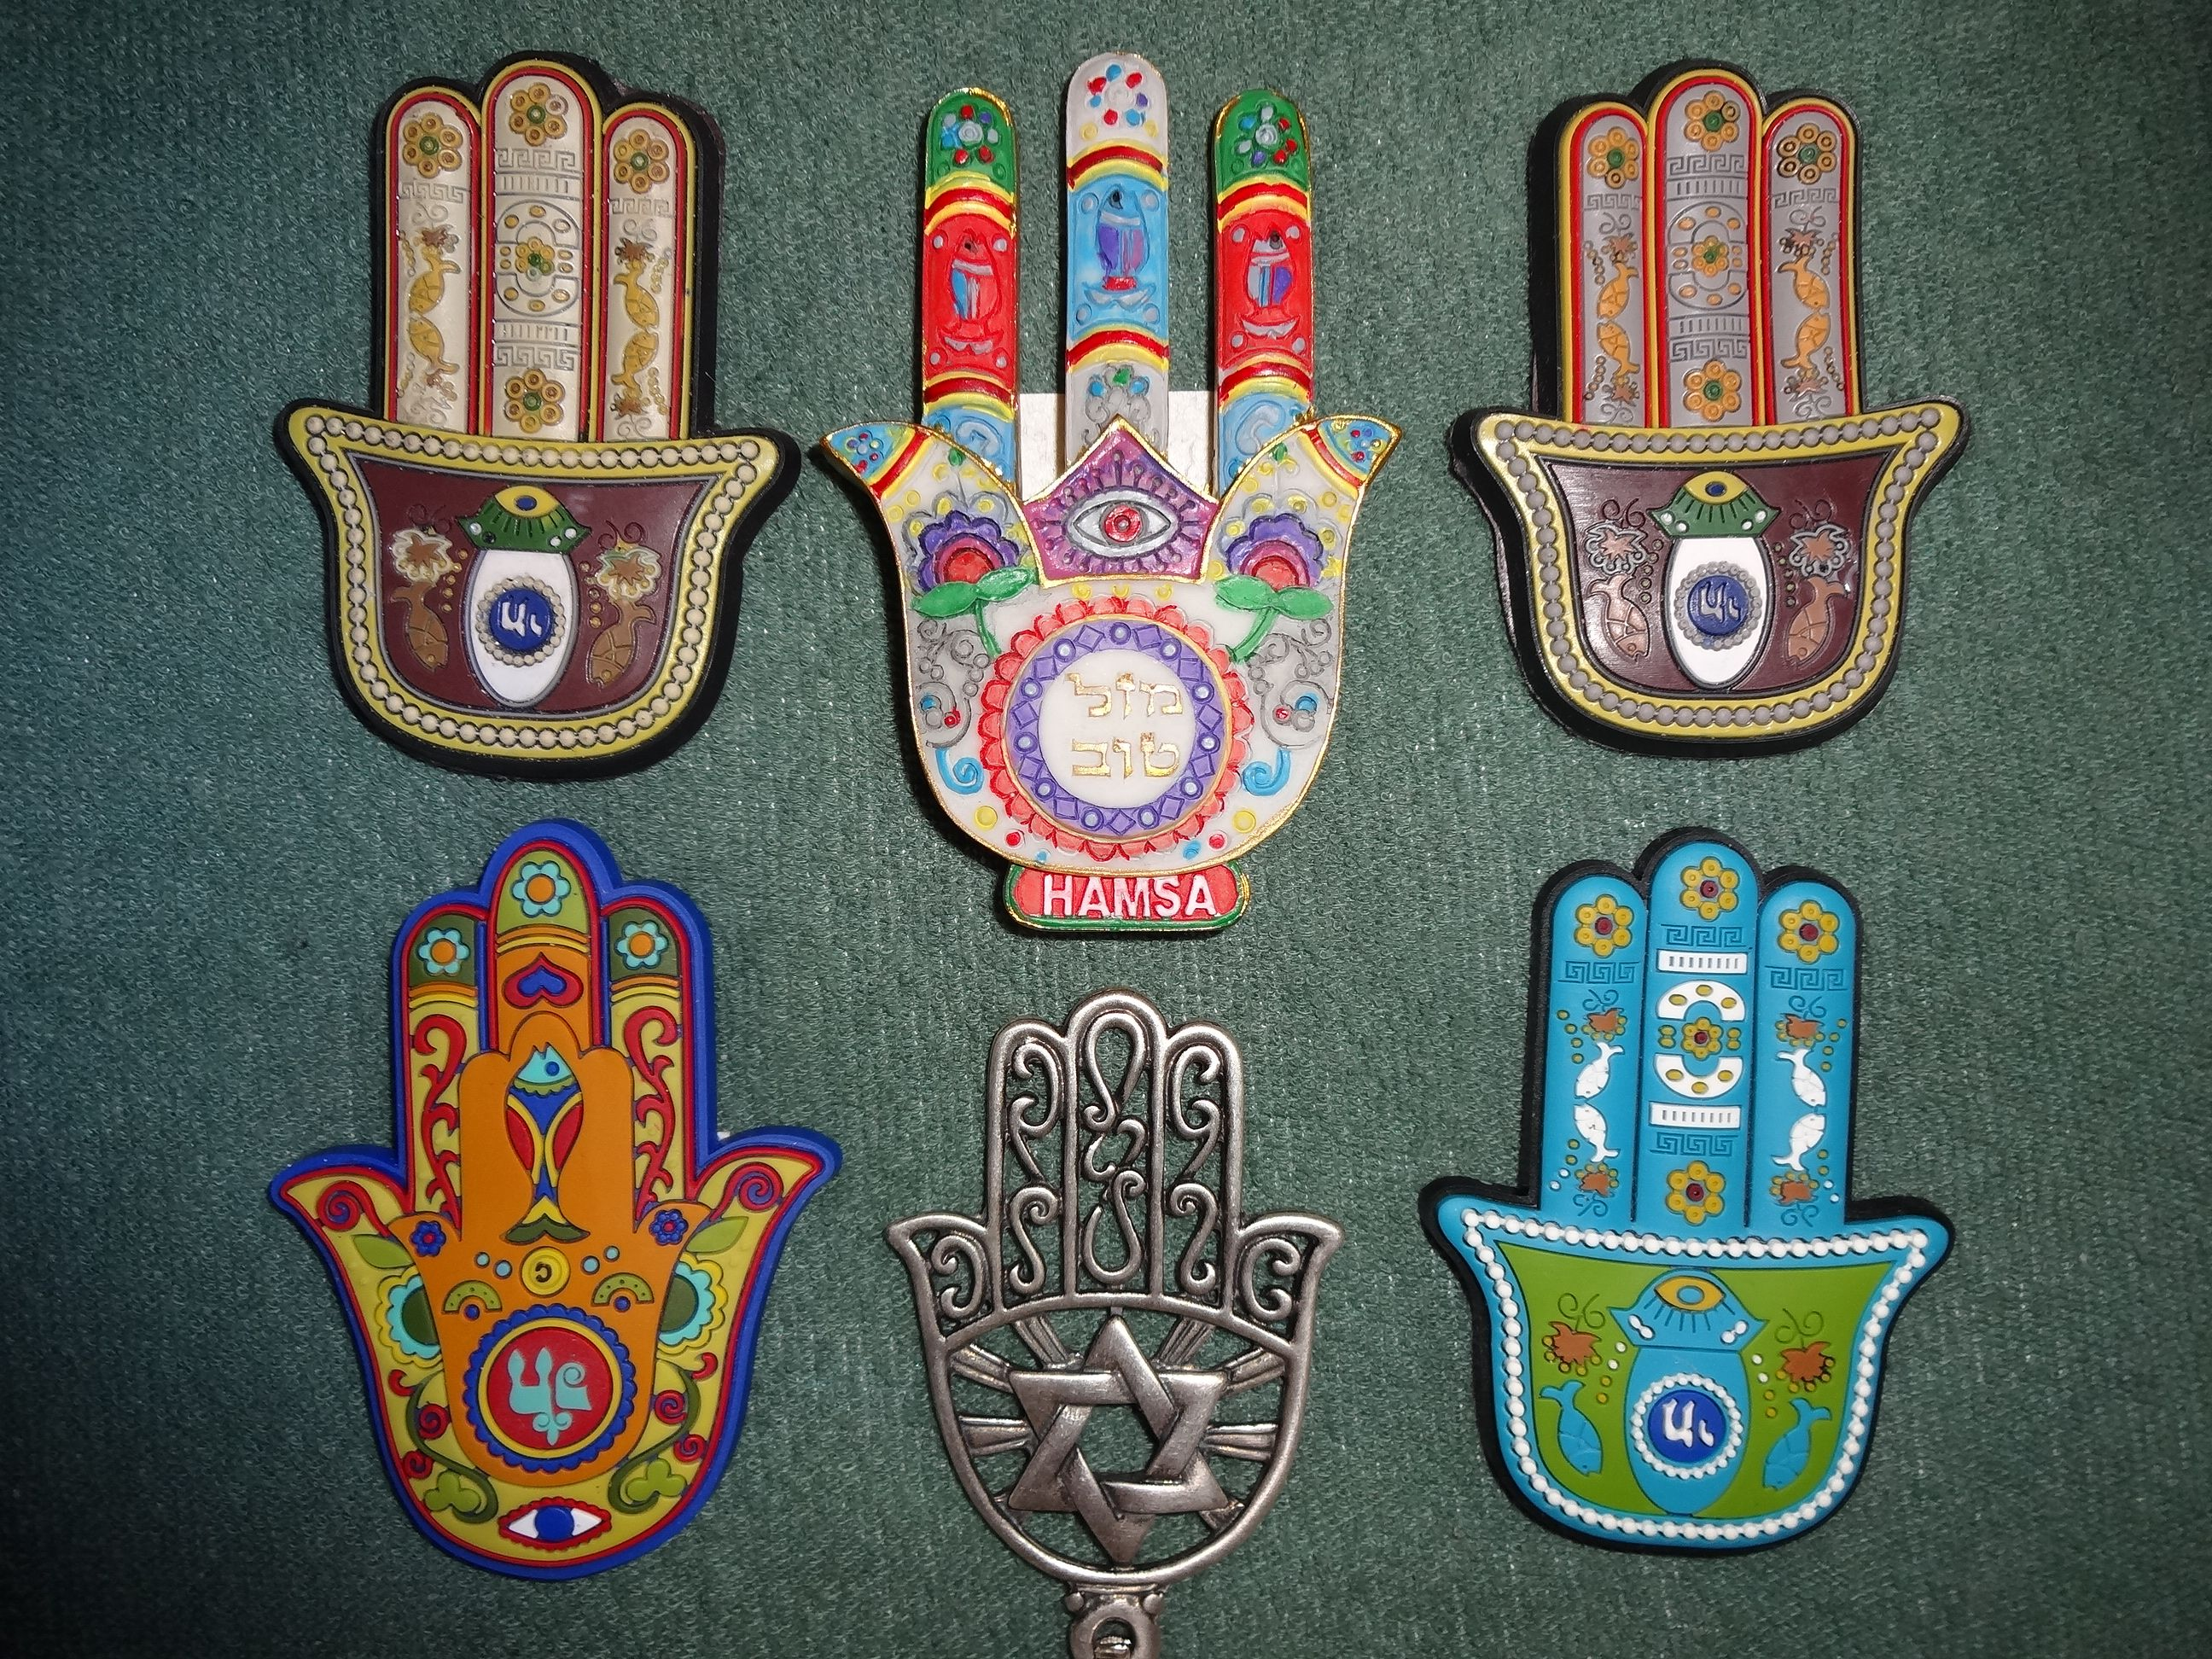 Khamsa talismans (Photo by Bluewind - Own work, CC BY-SA 3.0)